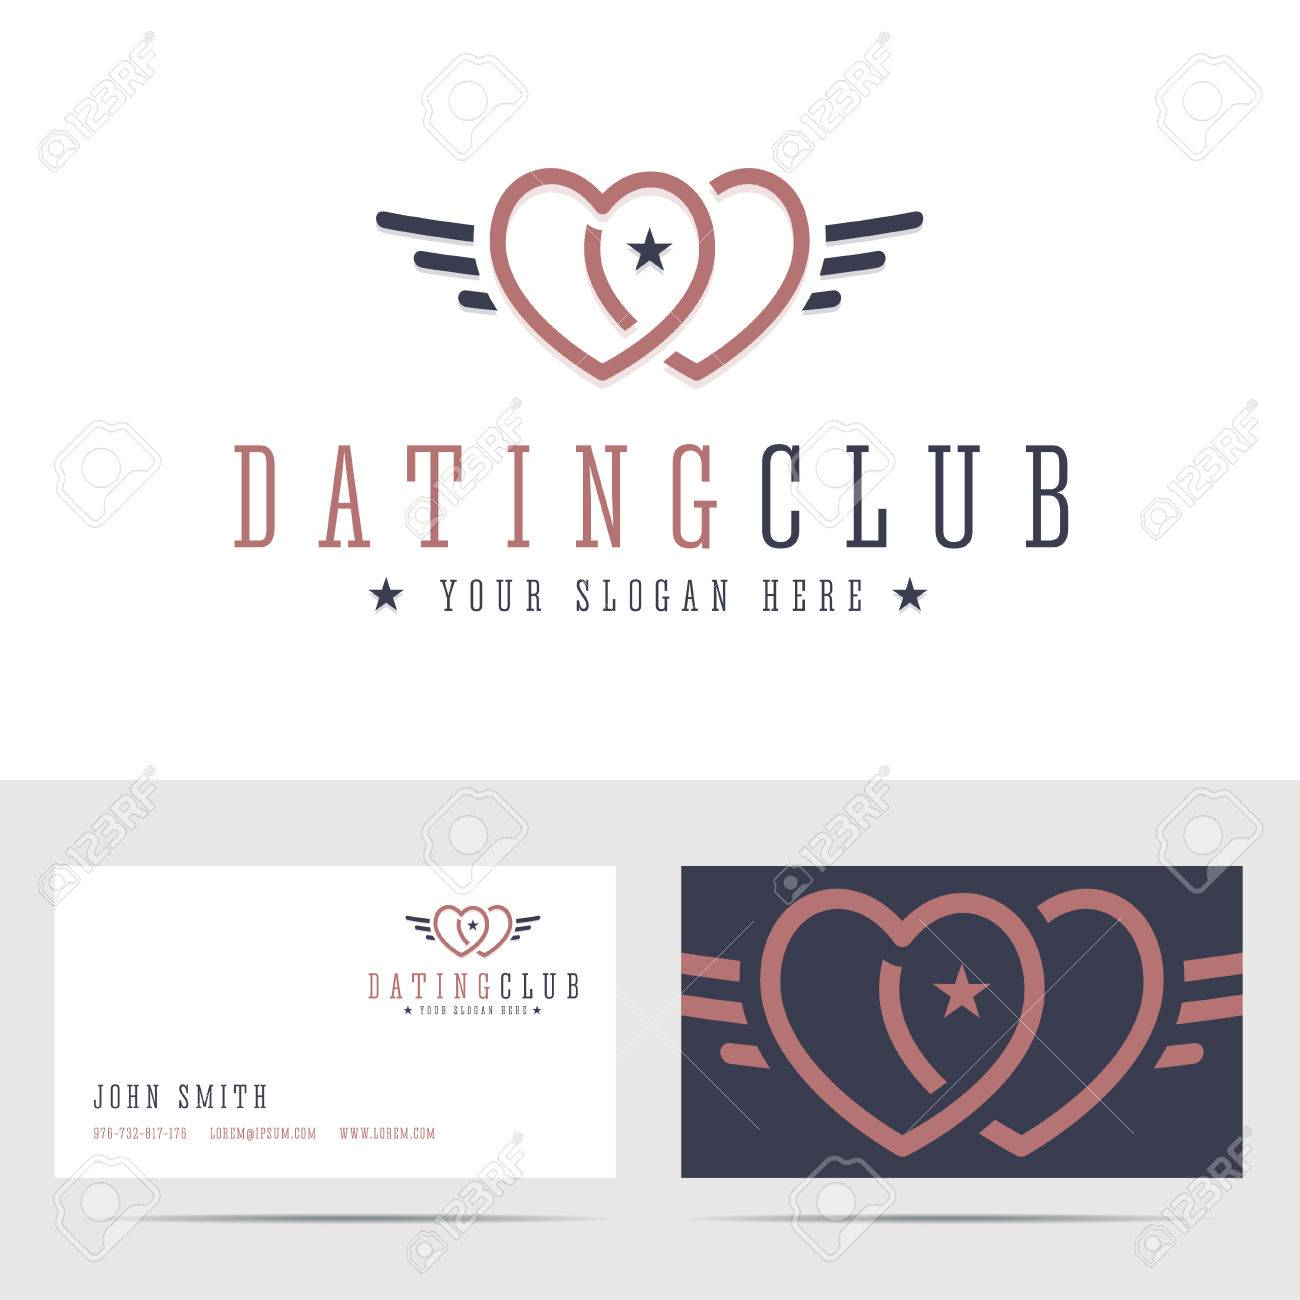 Dating club and business card template two hearts sign with dating club and business card template two hearts sign with angel wings online dating reheart Image collections